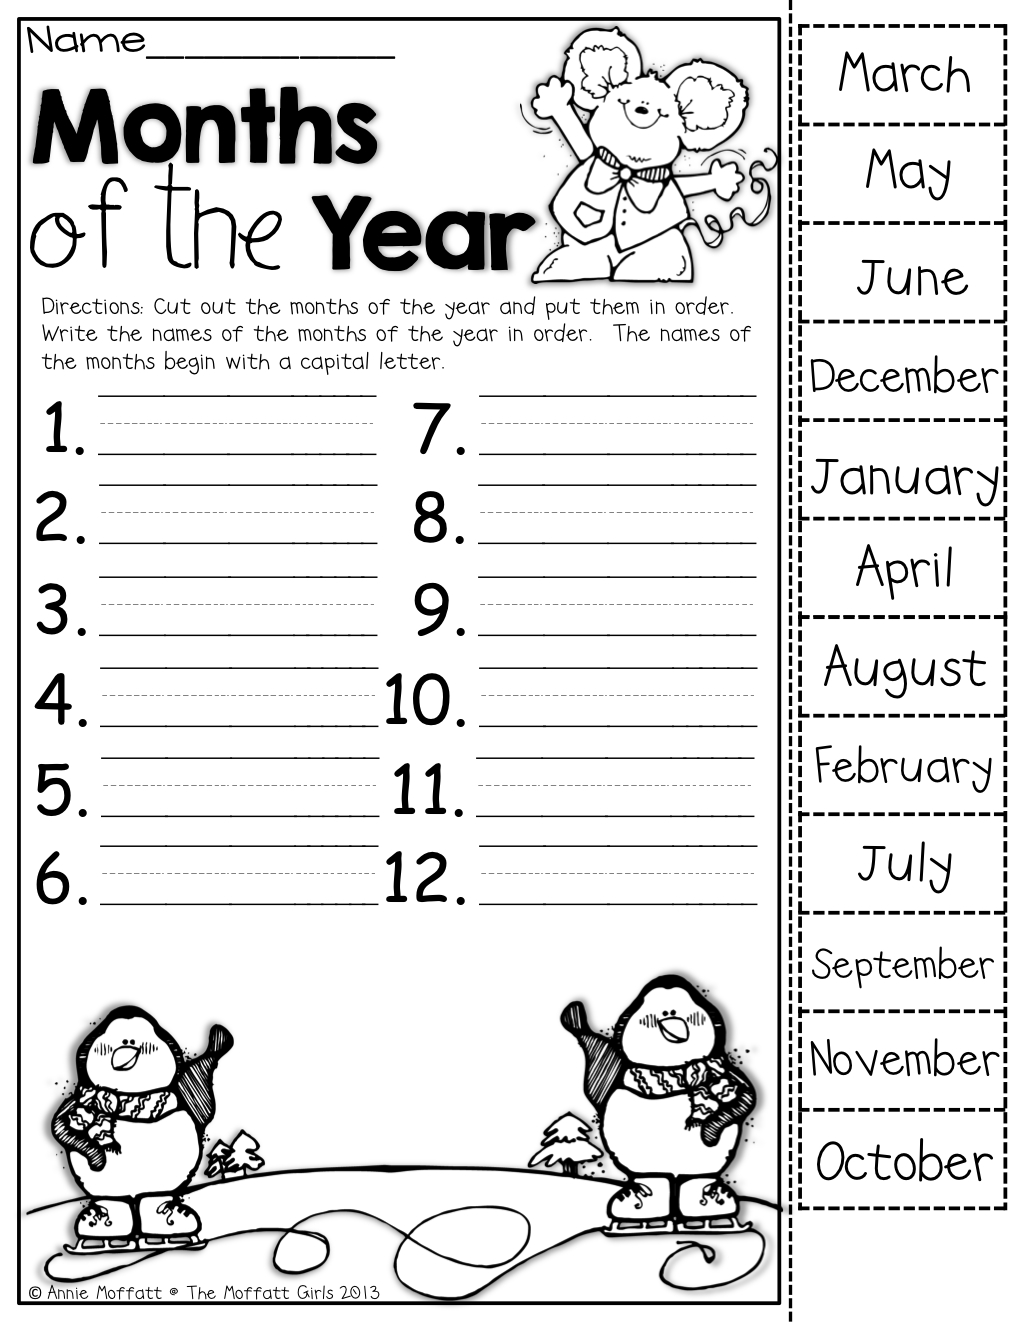 Months Of The Year (Cut Out The Months, Put Them In Order And Write within July-December Writing Months Of The Year Worksheet